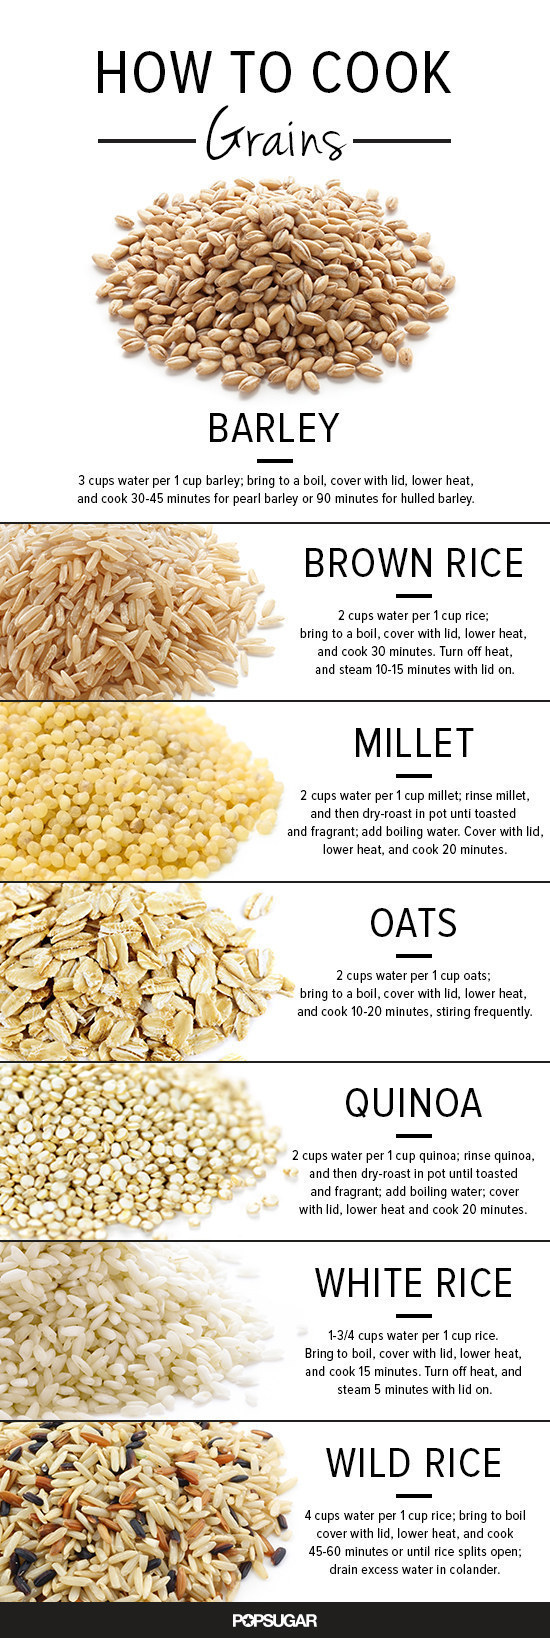 For getting perfect grains every time: